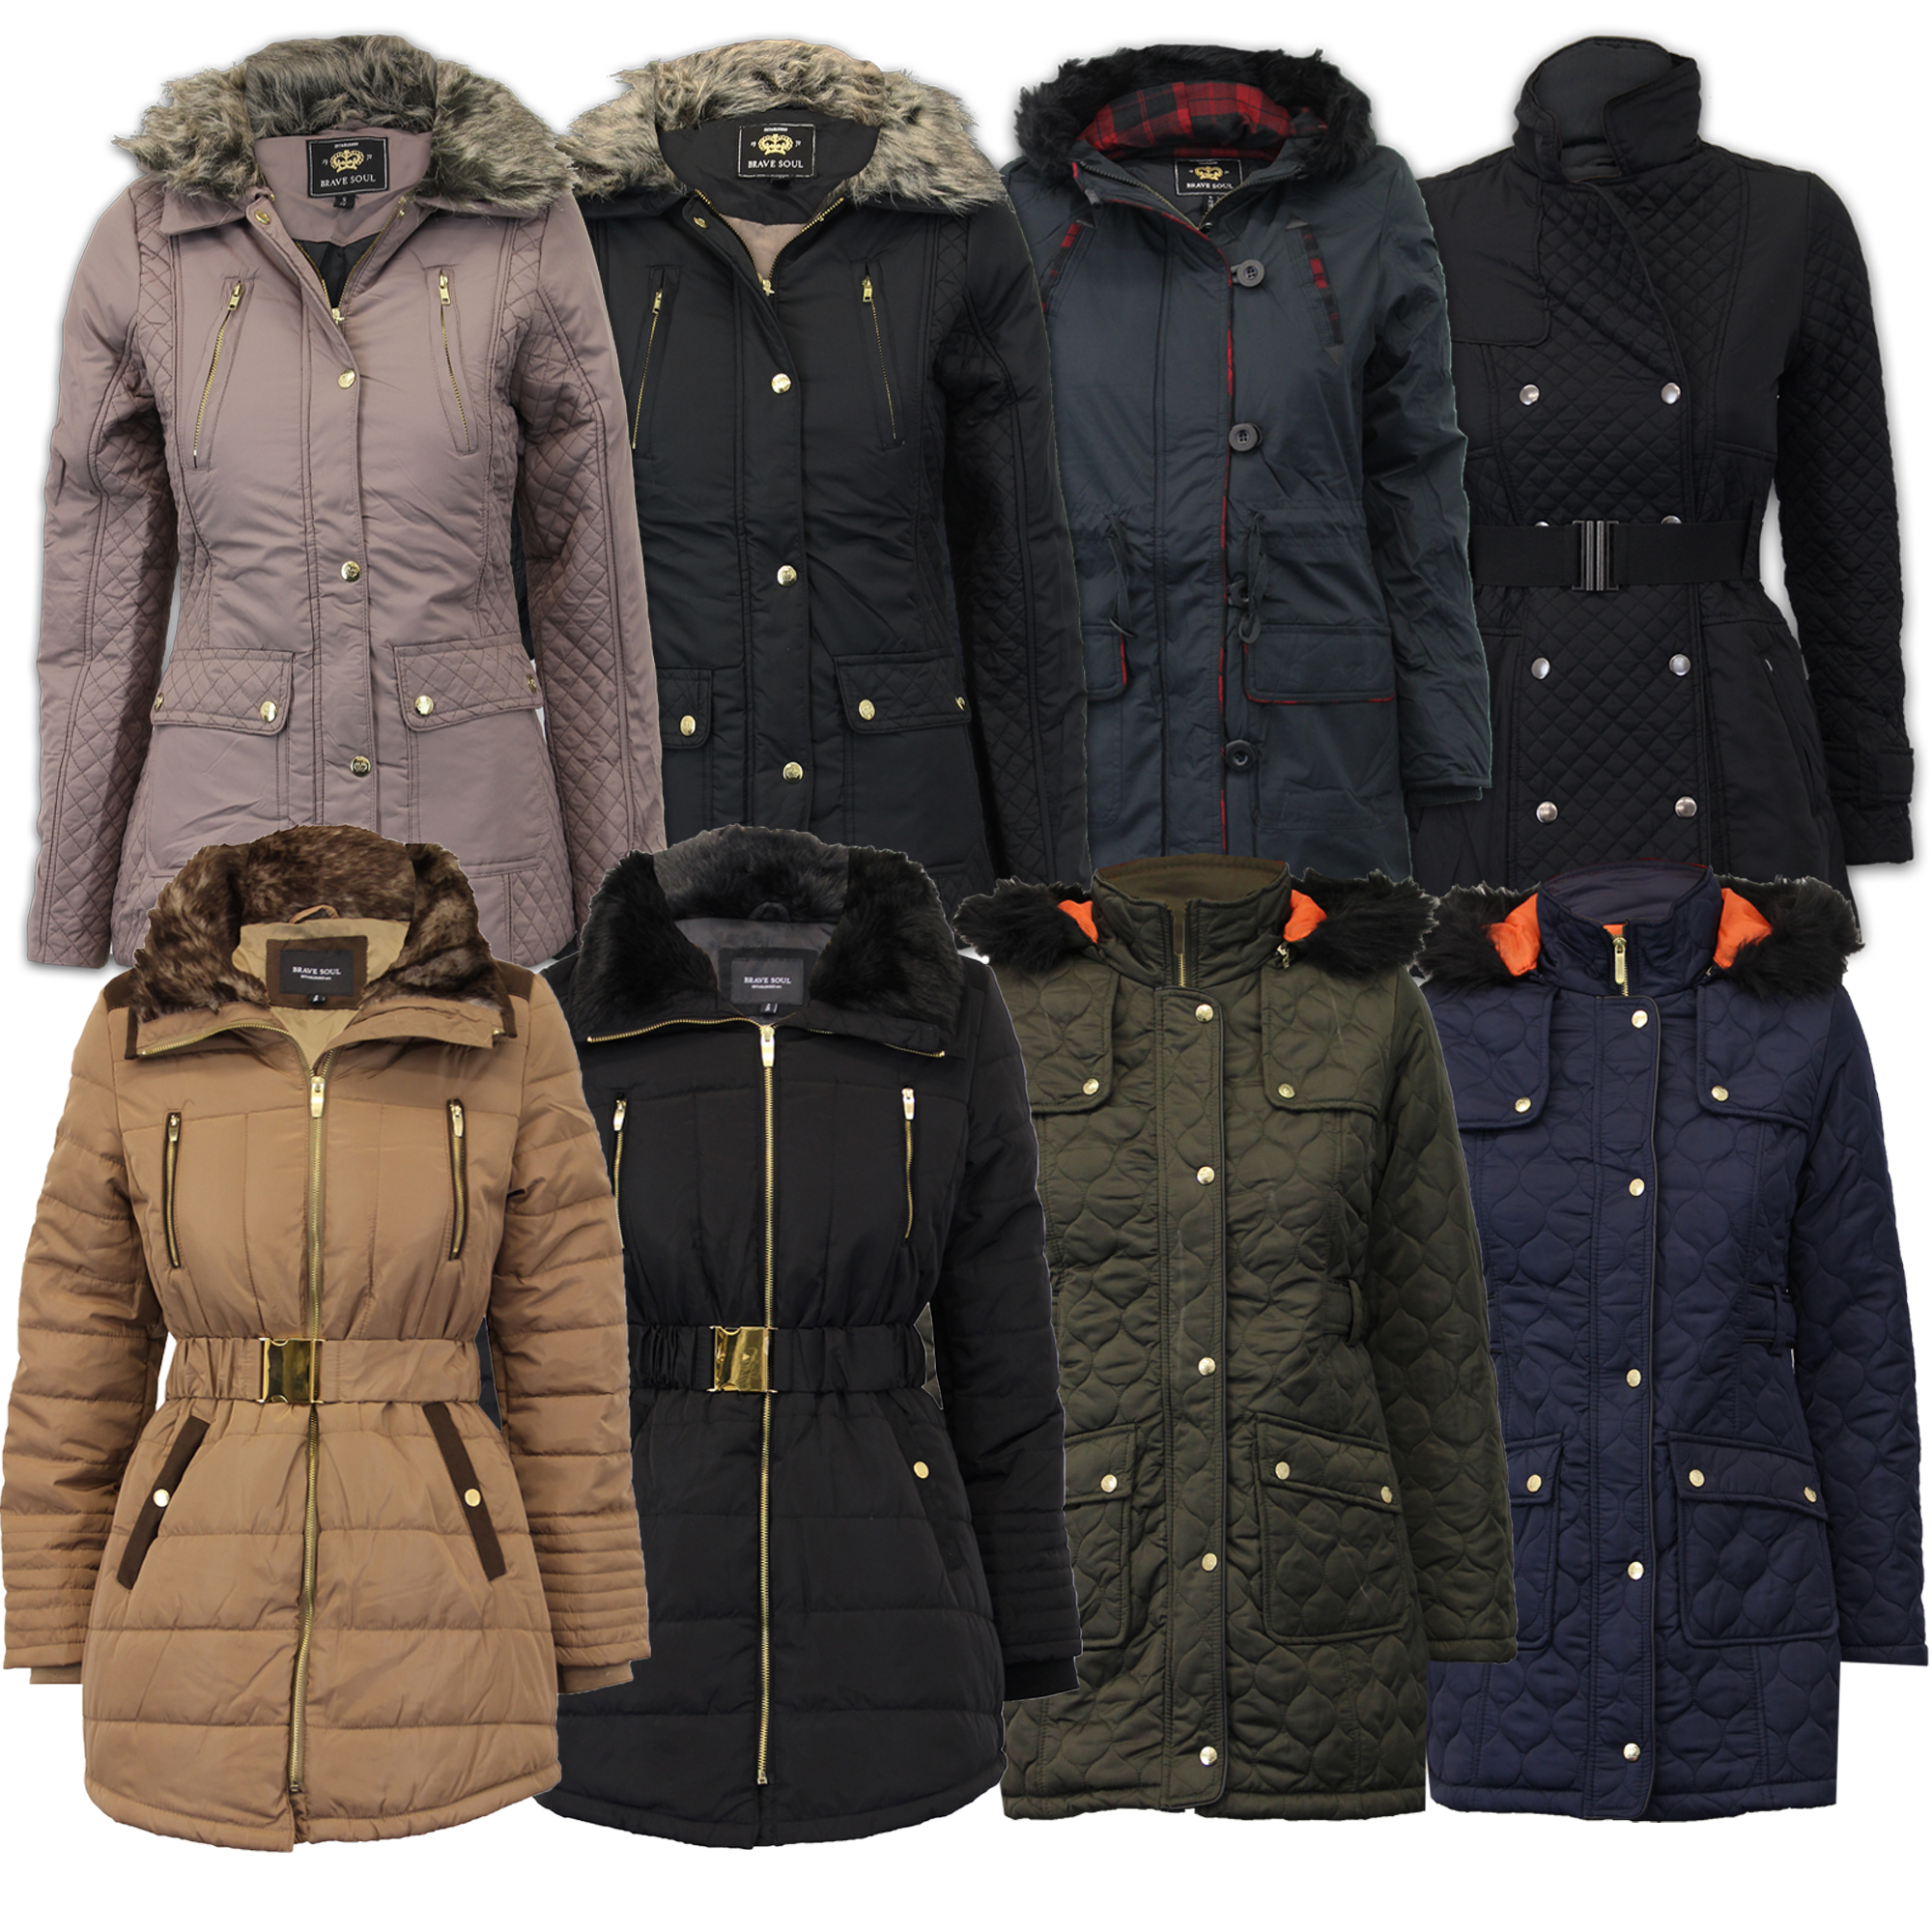 Ladies Parka Jacket | Jackets Review